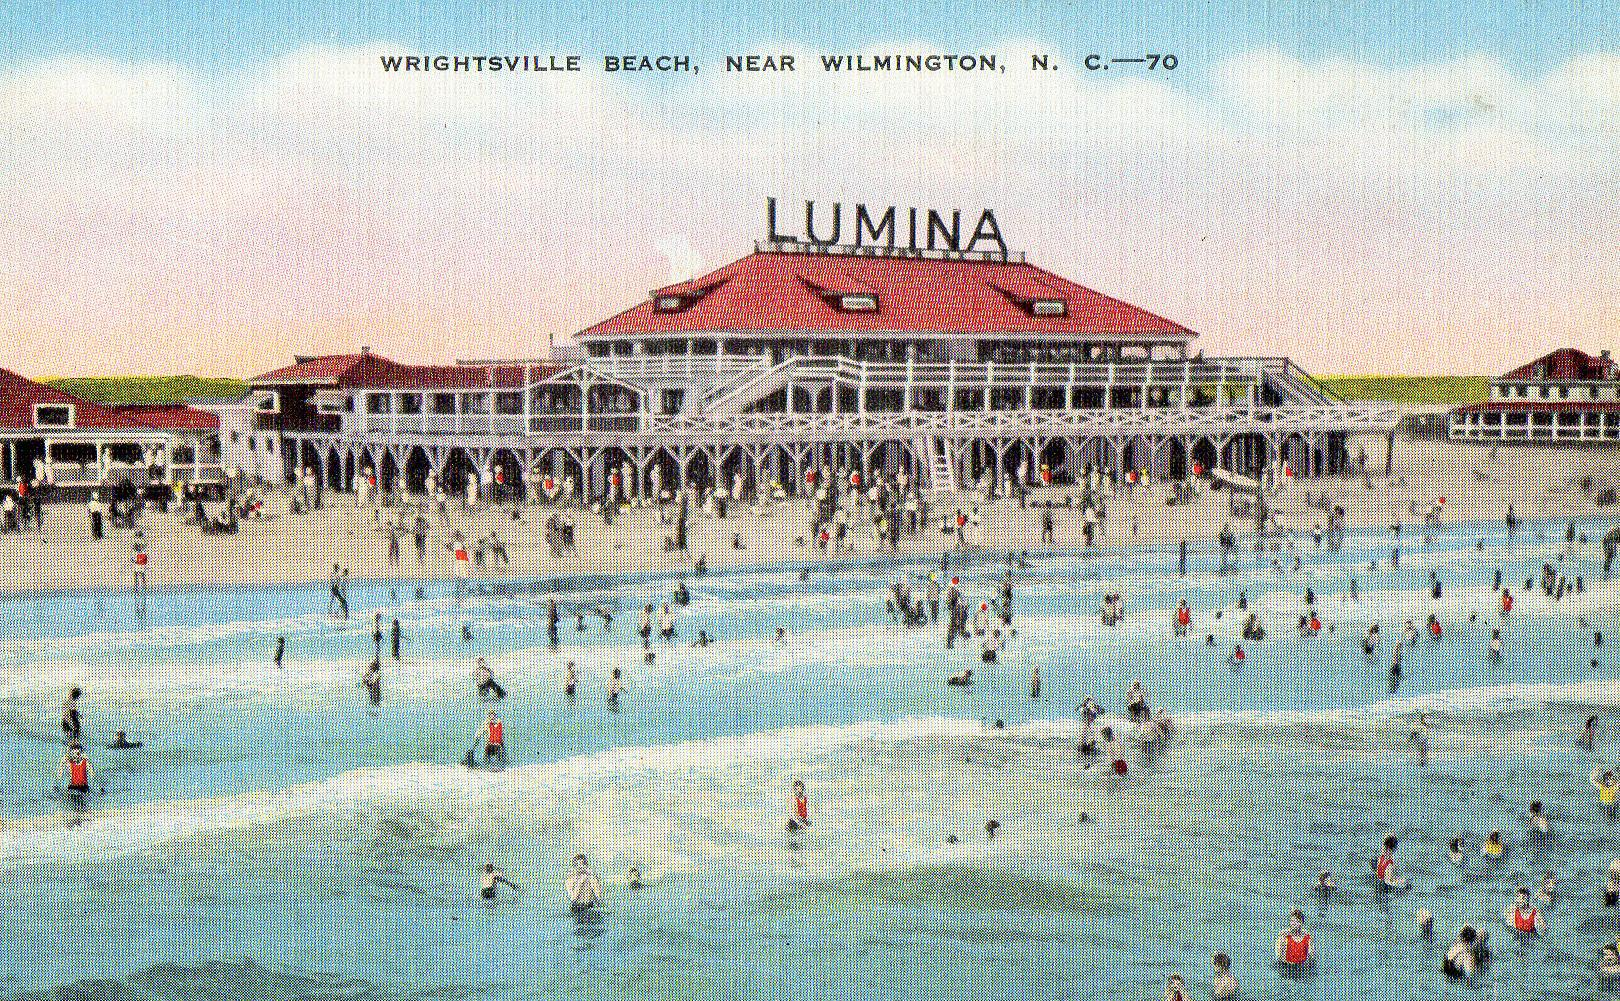 Madeline Flagler Is The Executive Director Of Wrightsville Beach Museum History Every Year They Host A Great Fundraiser Called Lumina Daze